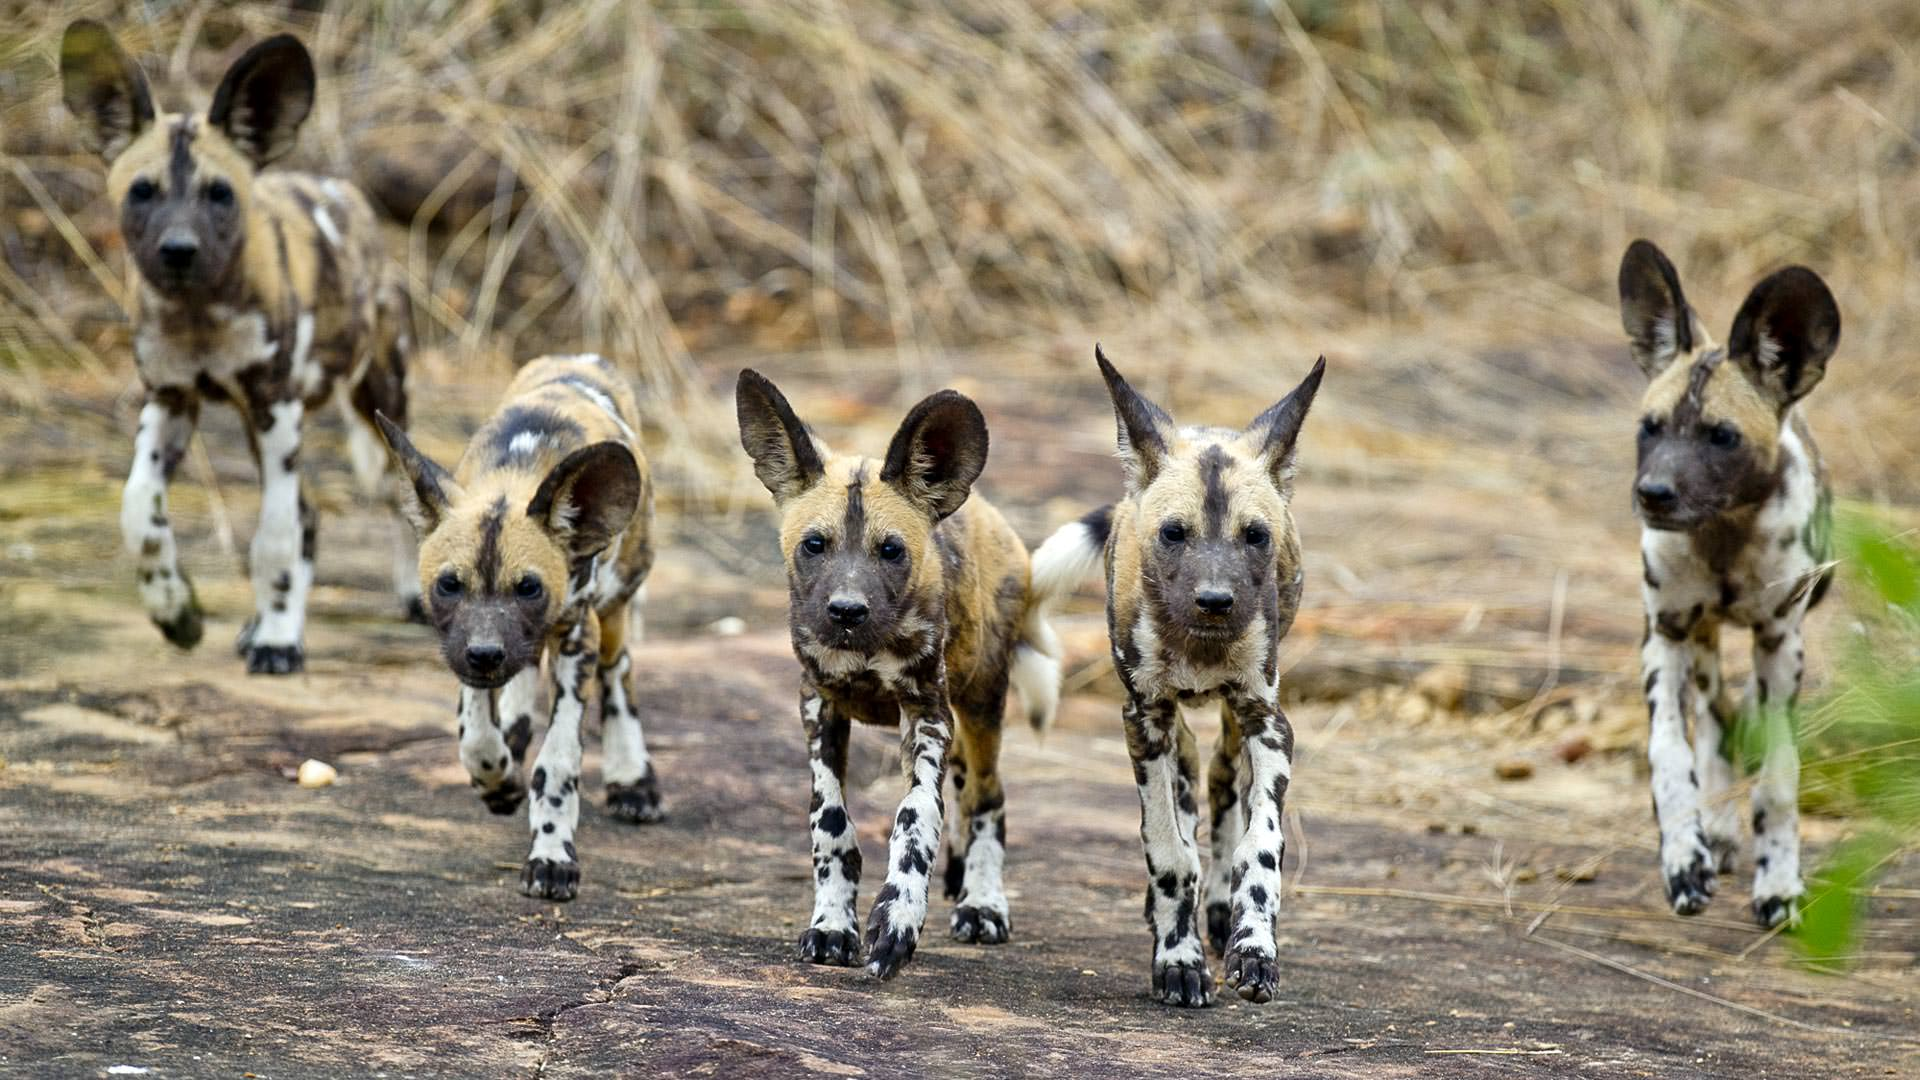 Wild dogs in Selous Game Reserve